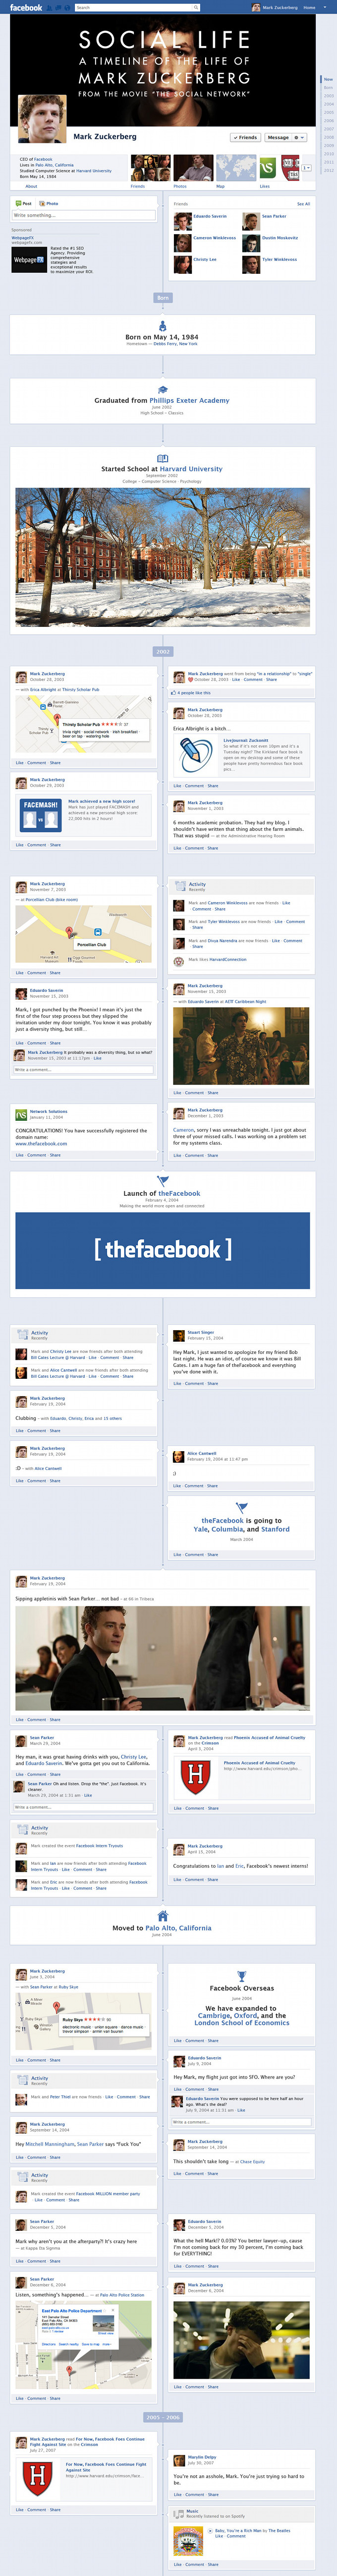 The Social Network Facebook Timeline Infographic